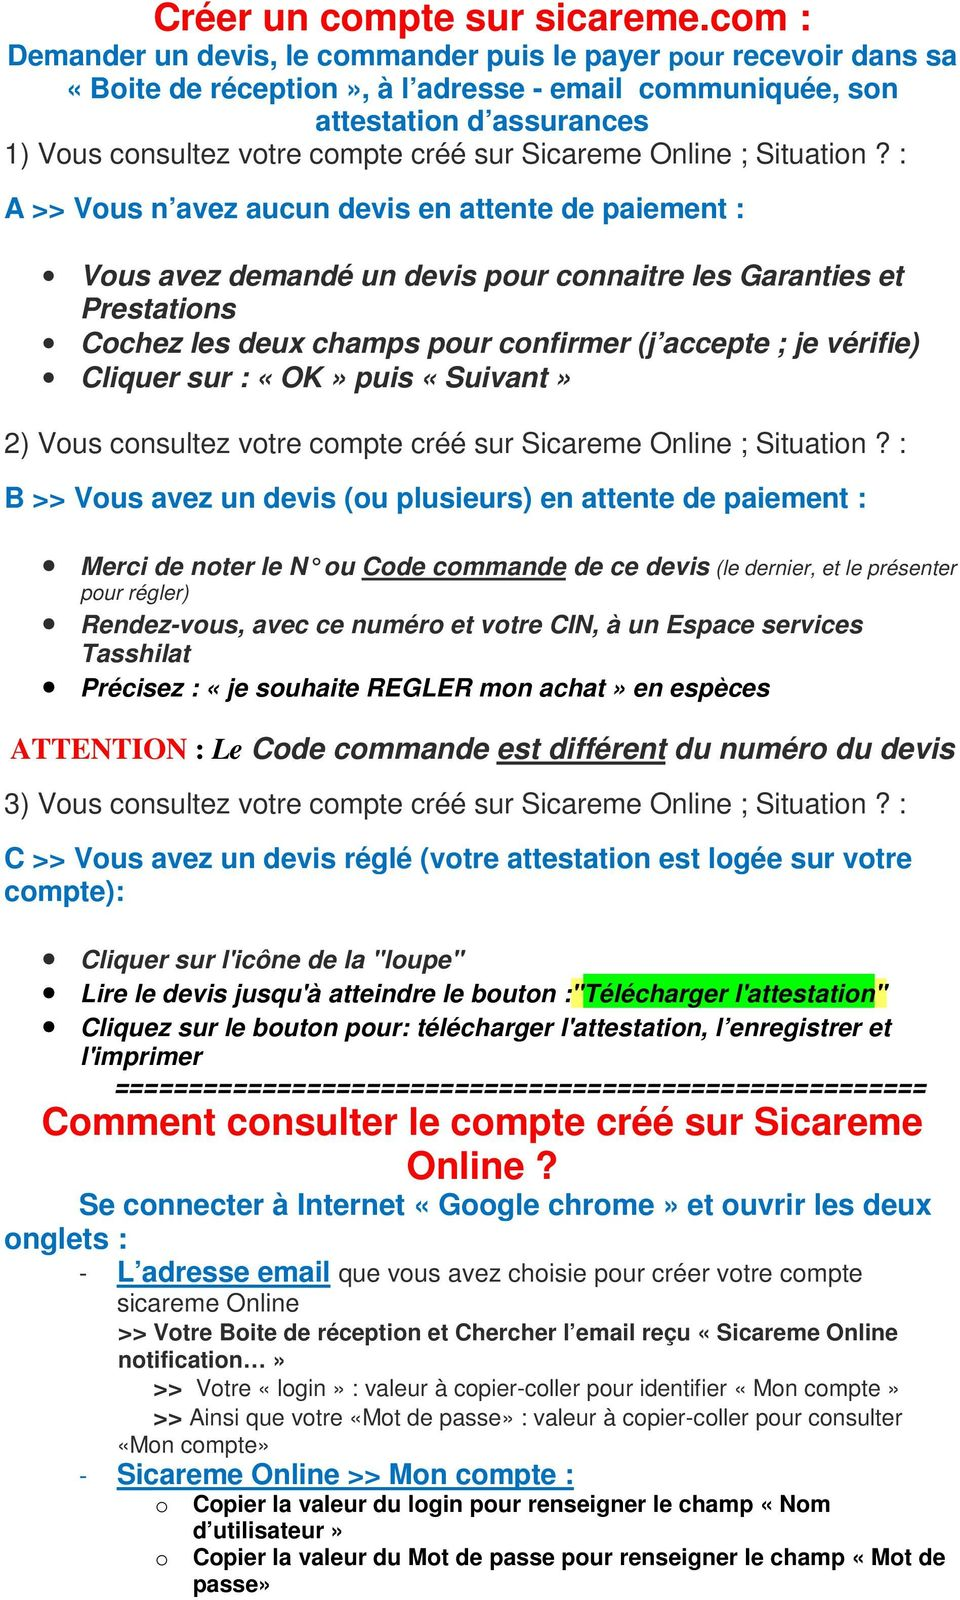 Sicareme Online ; Situation?